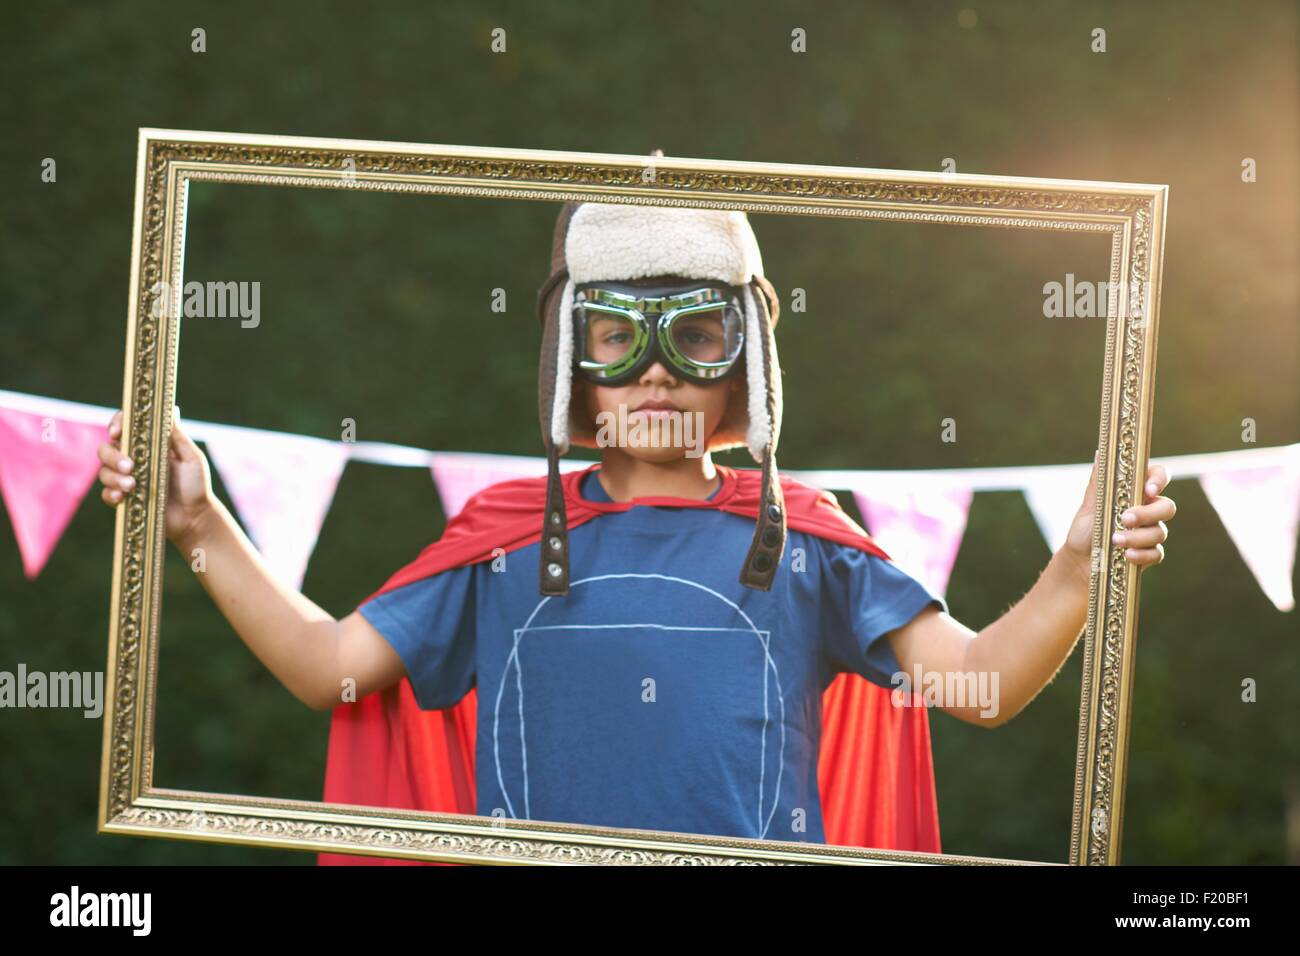 Portrait of boy looking through picture frame wearing cape, goggles and flying hat - Stock Image